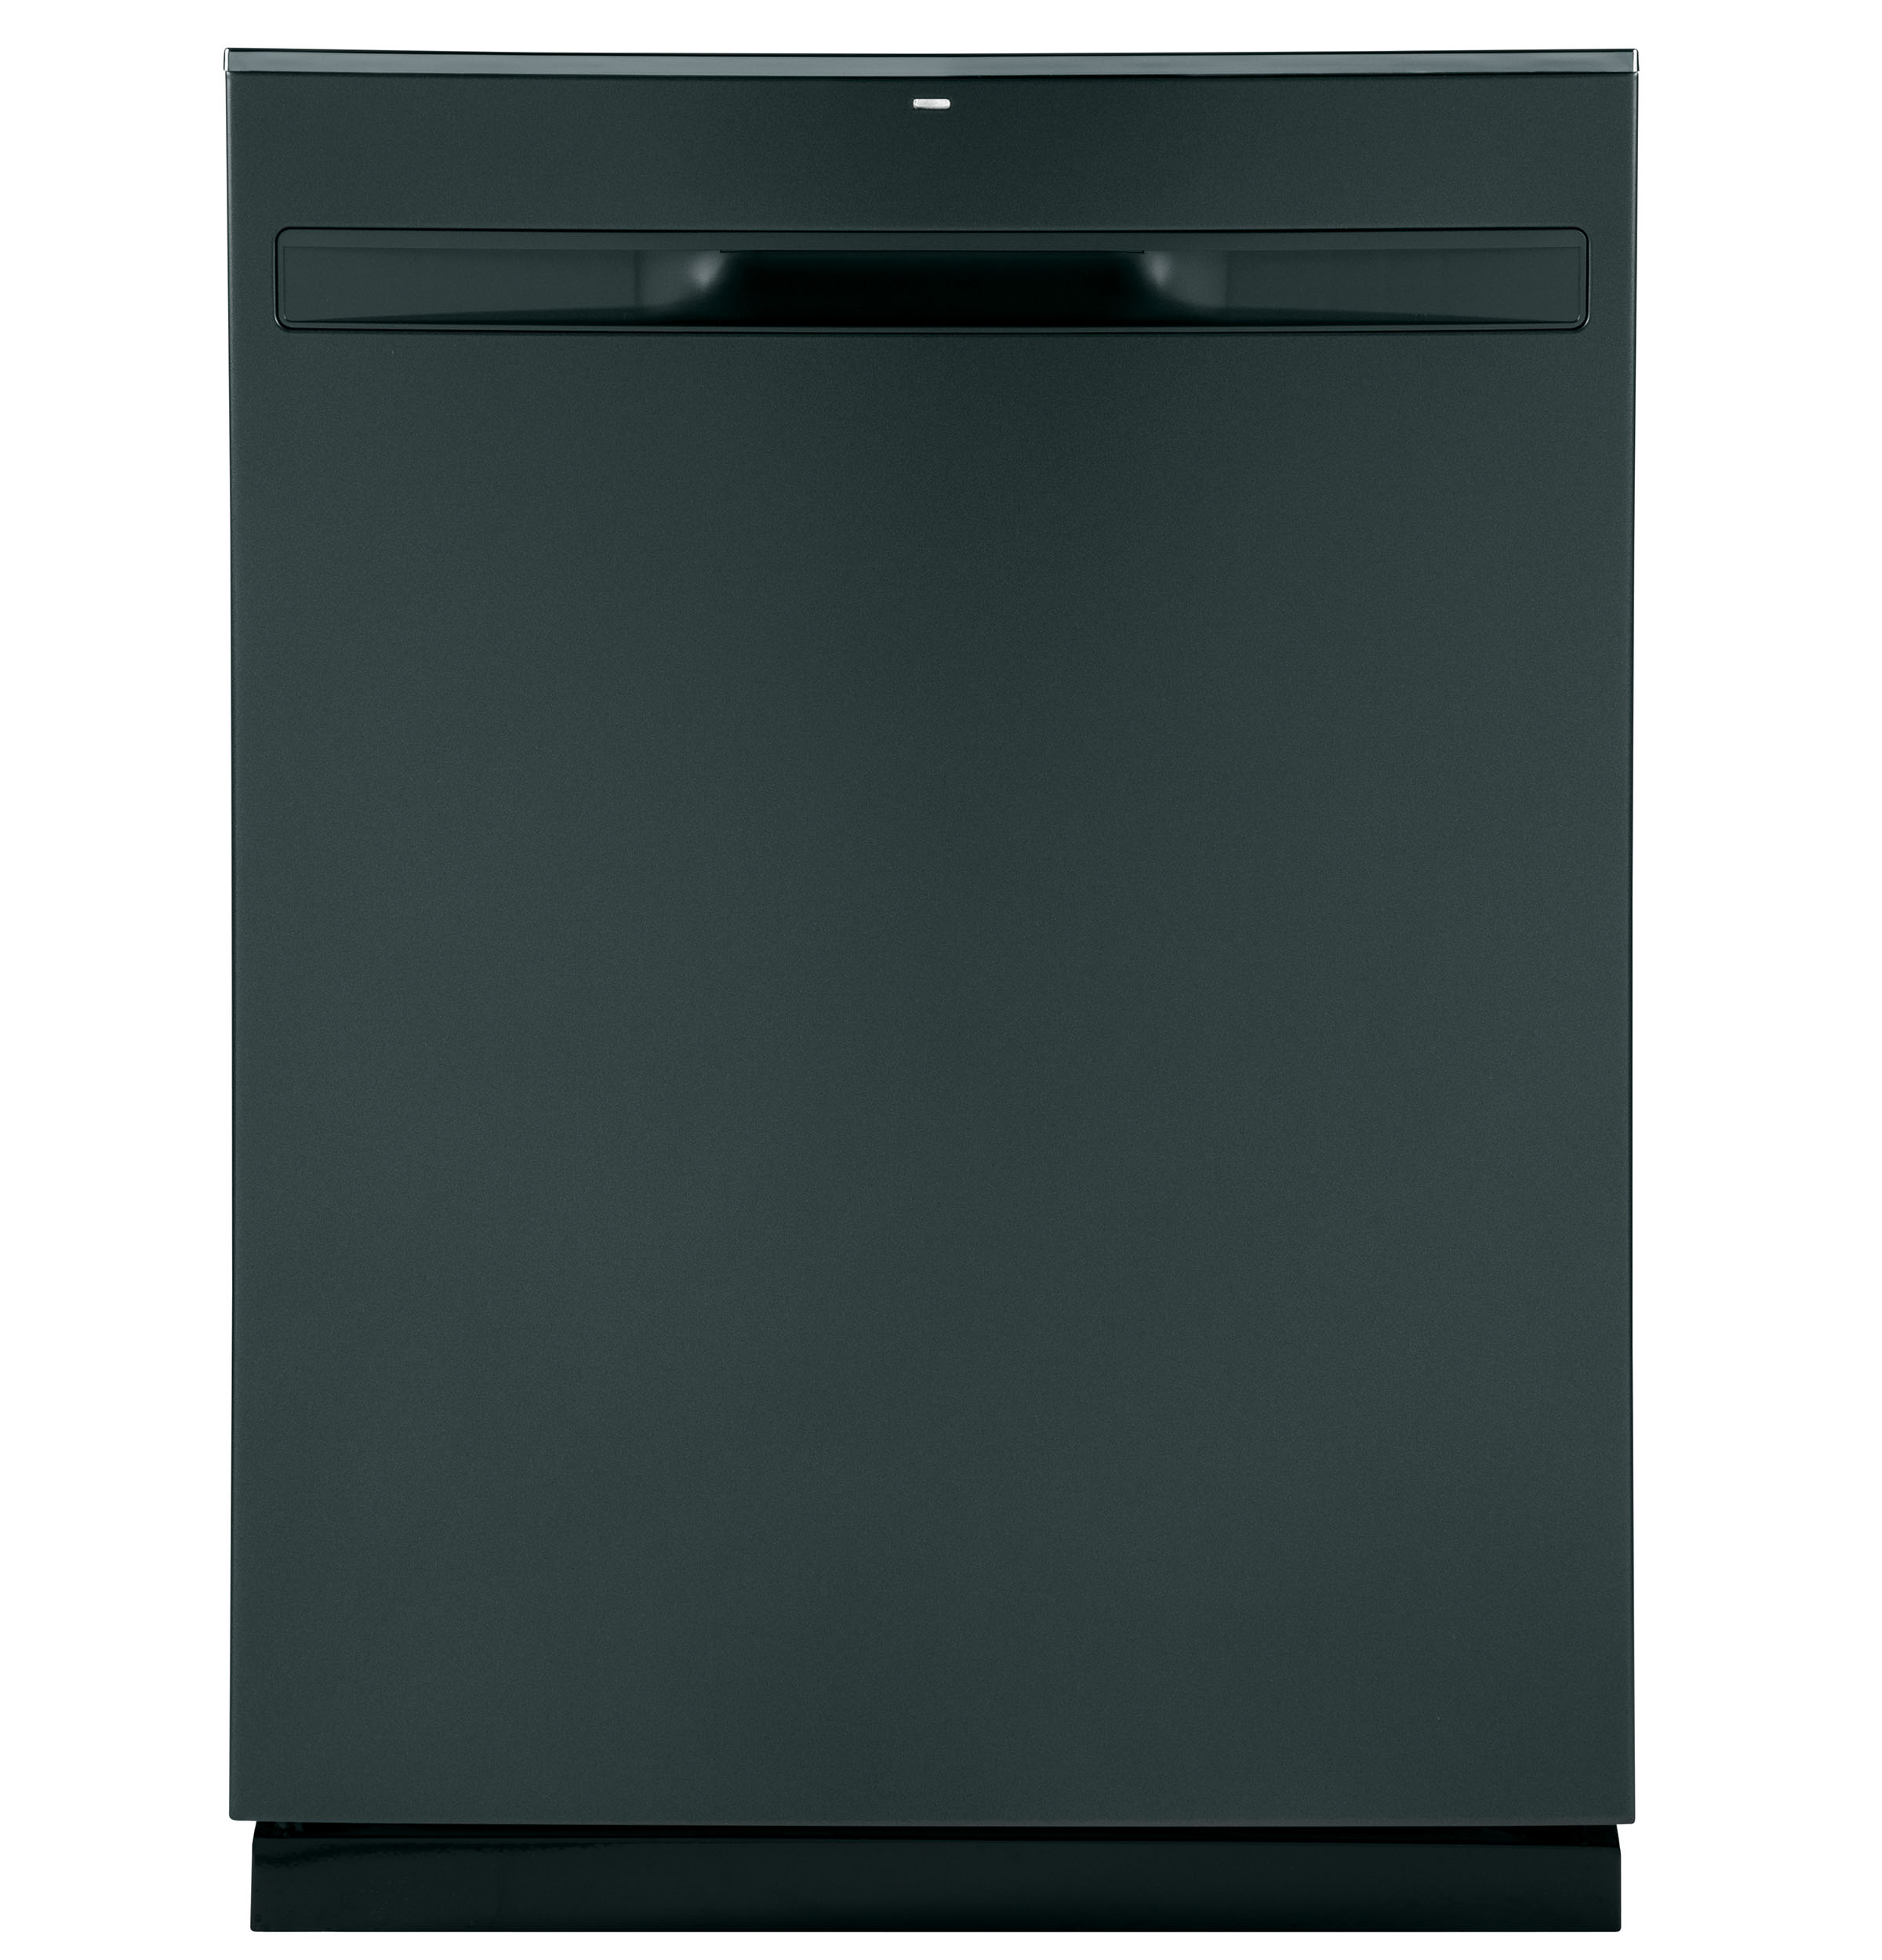 GE GE® Hybrid Stainless Steel Interior Dishwasher with Hidden Controls